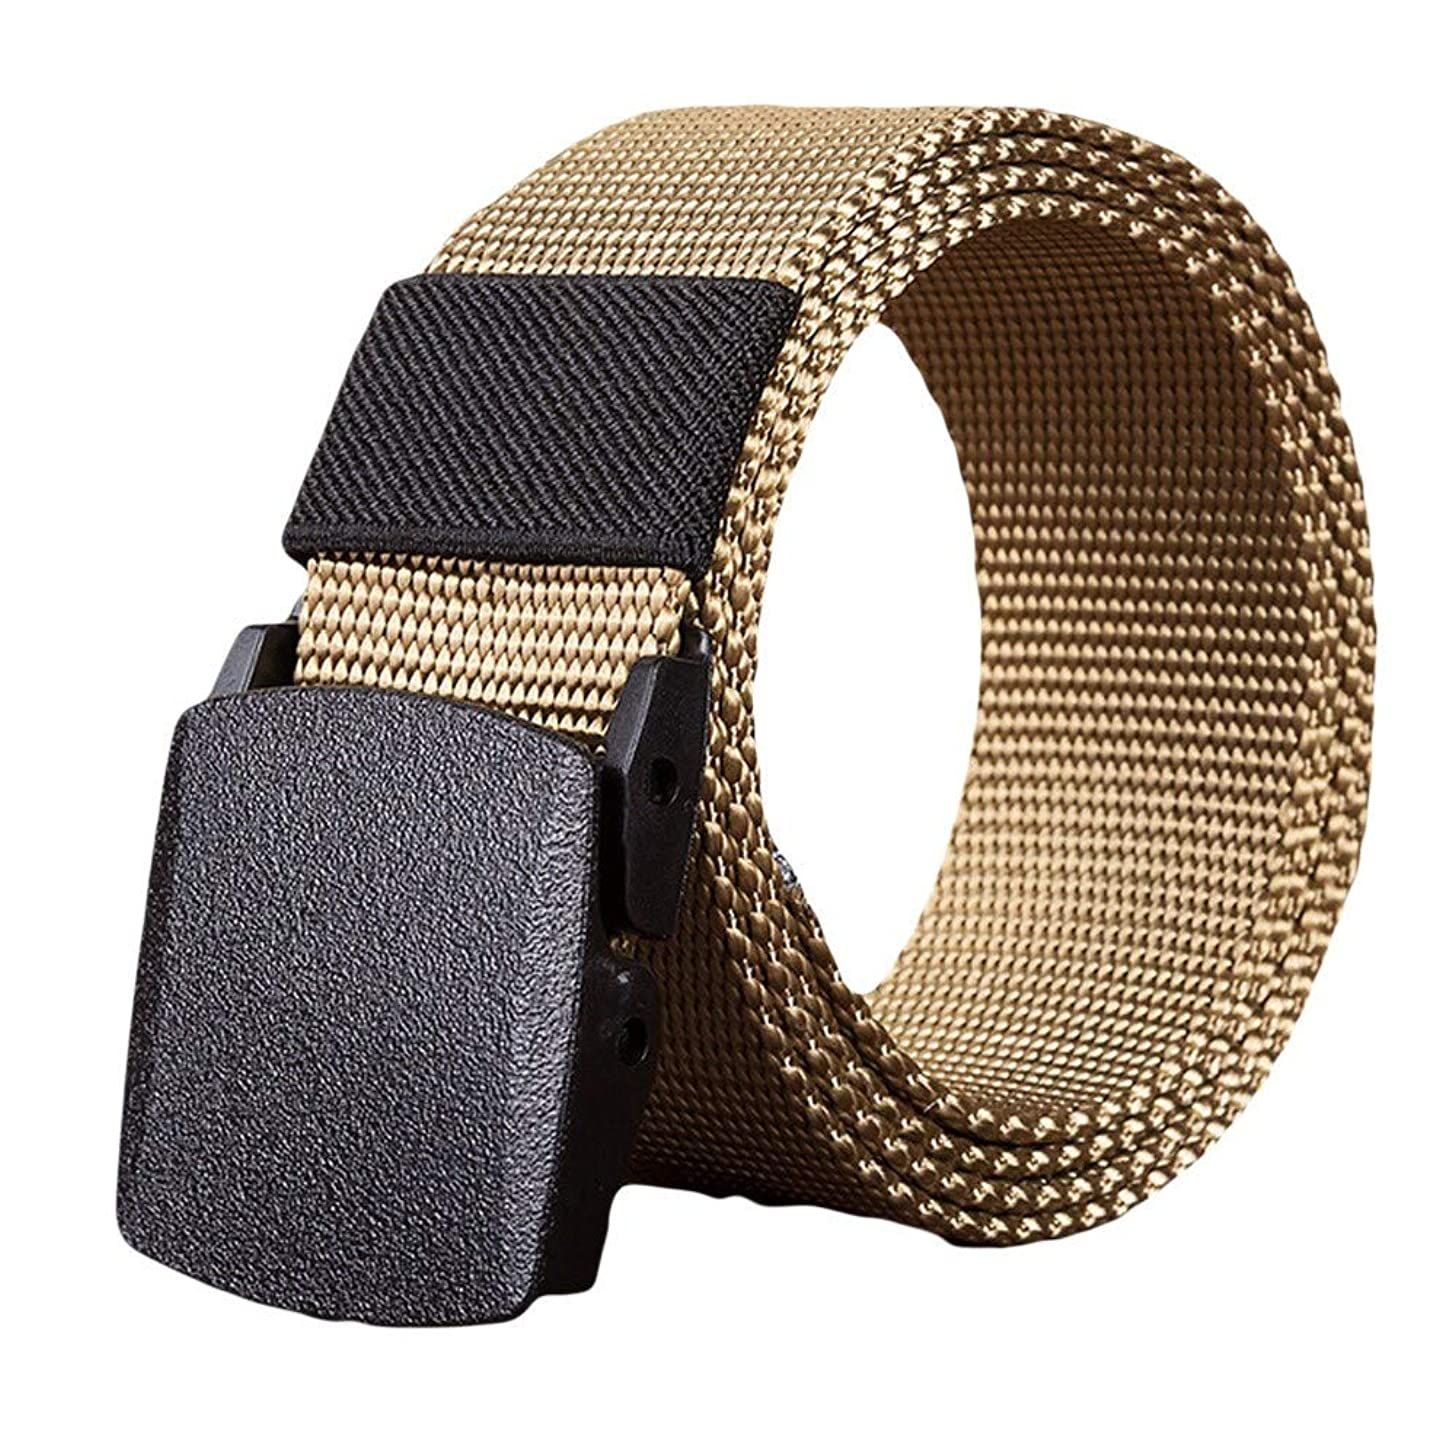 Yomiafy Men Women Simple Canvas Belts Military Style Waist Strap with Plastic Buckle